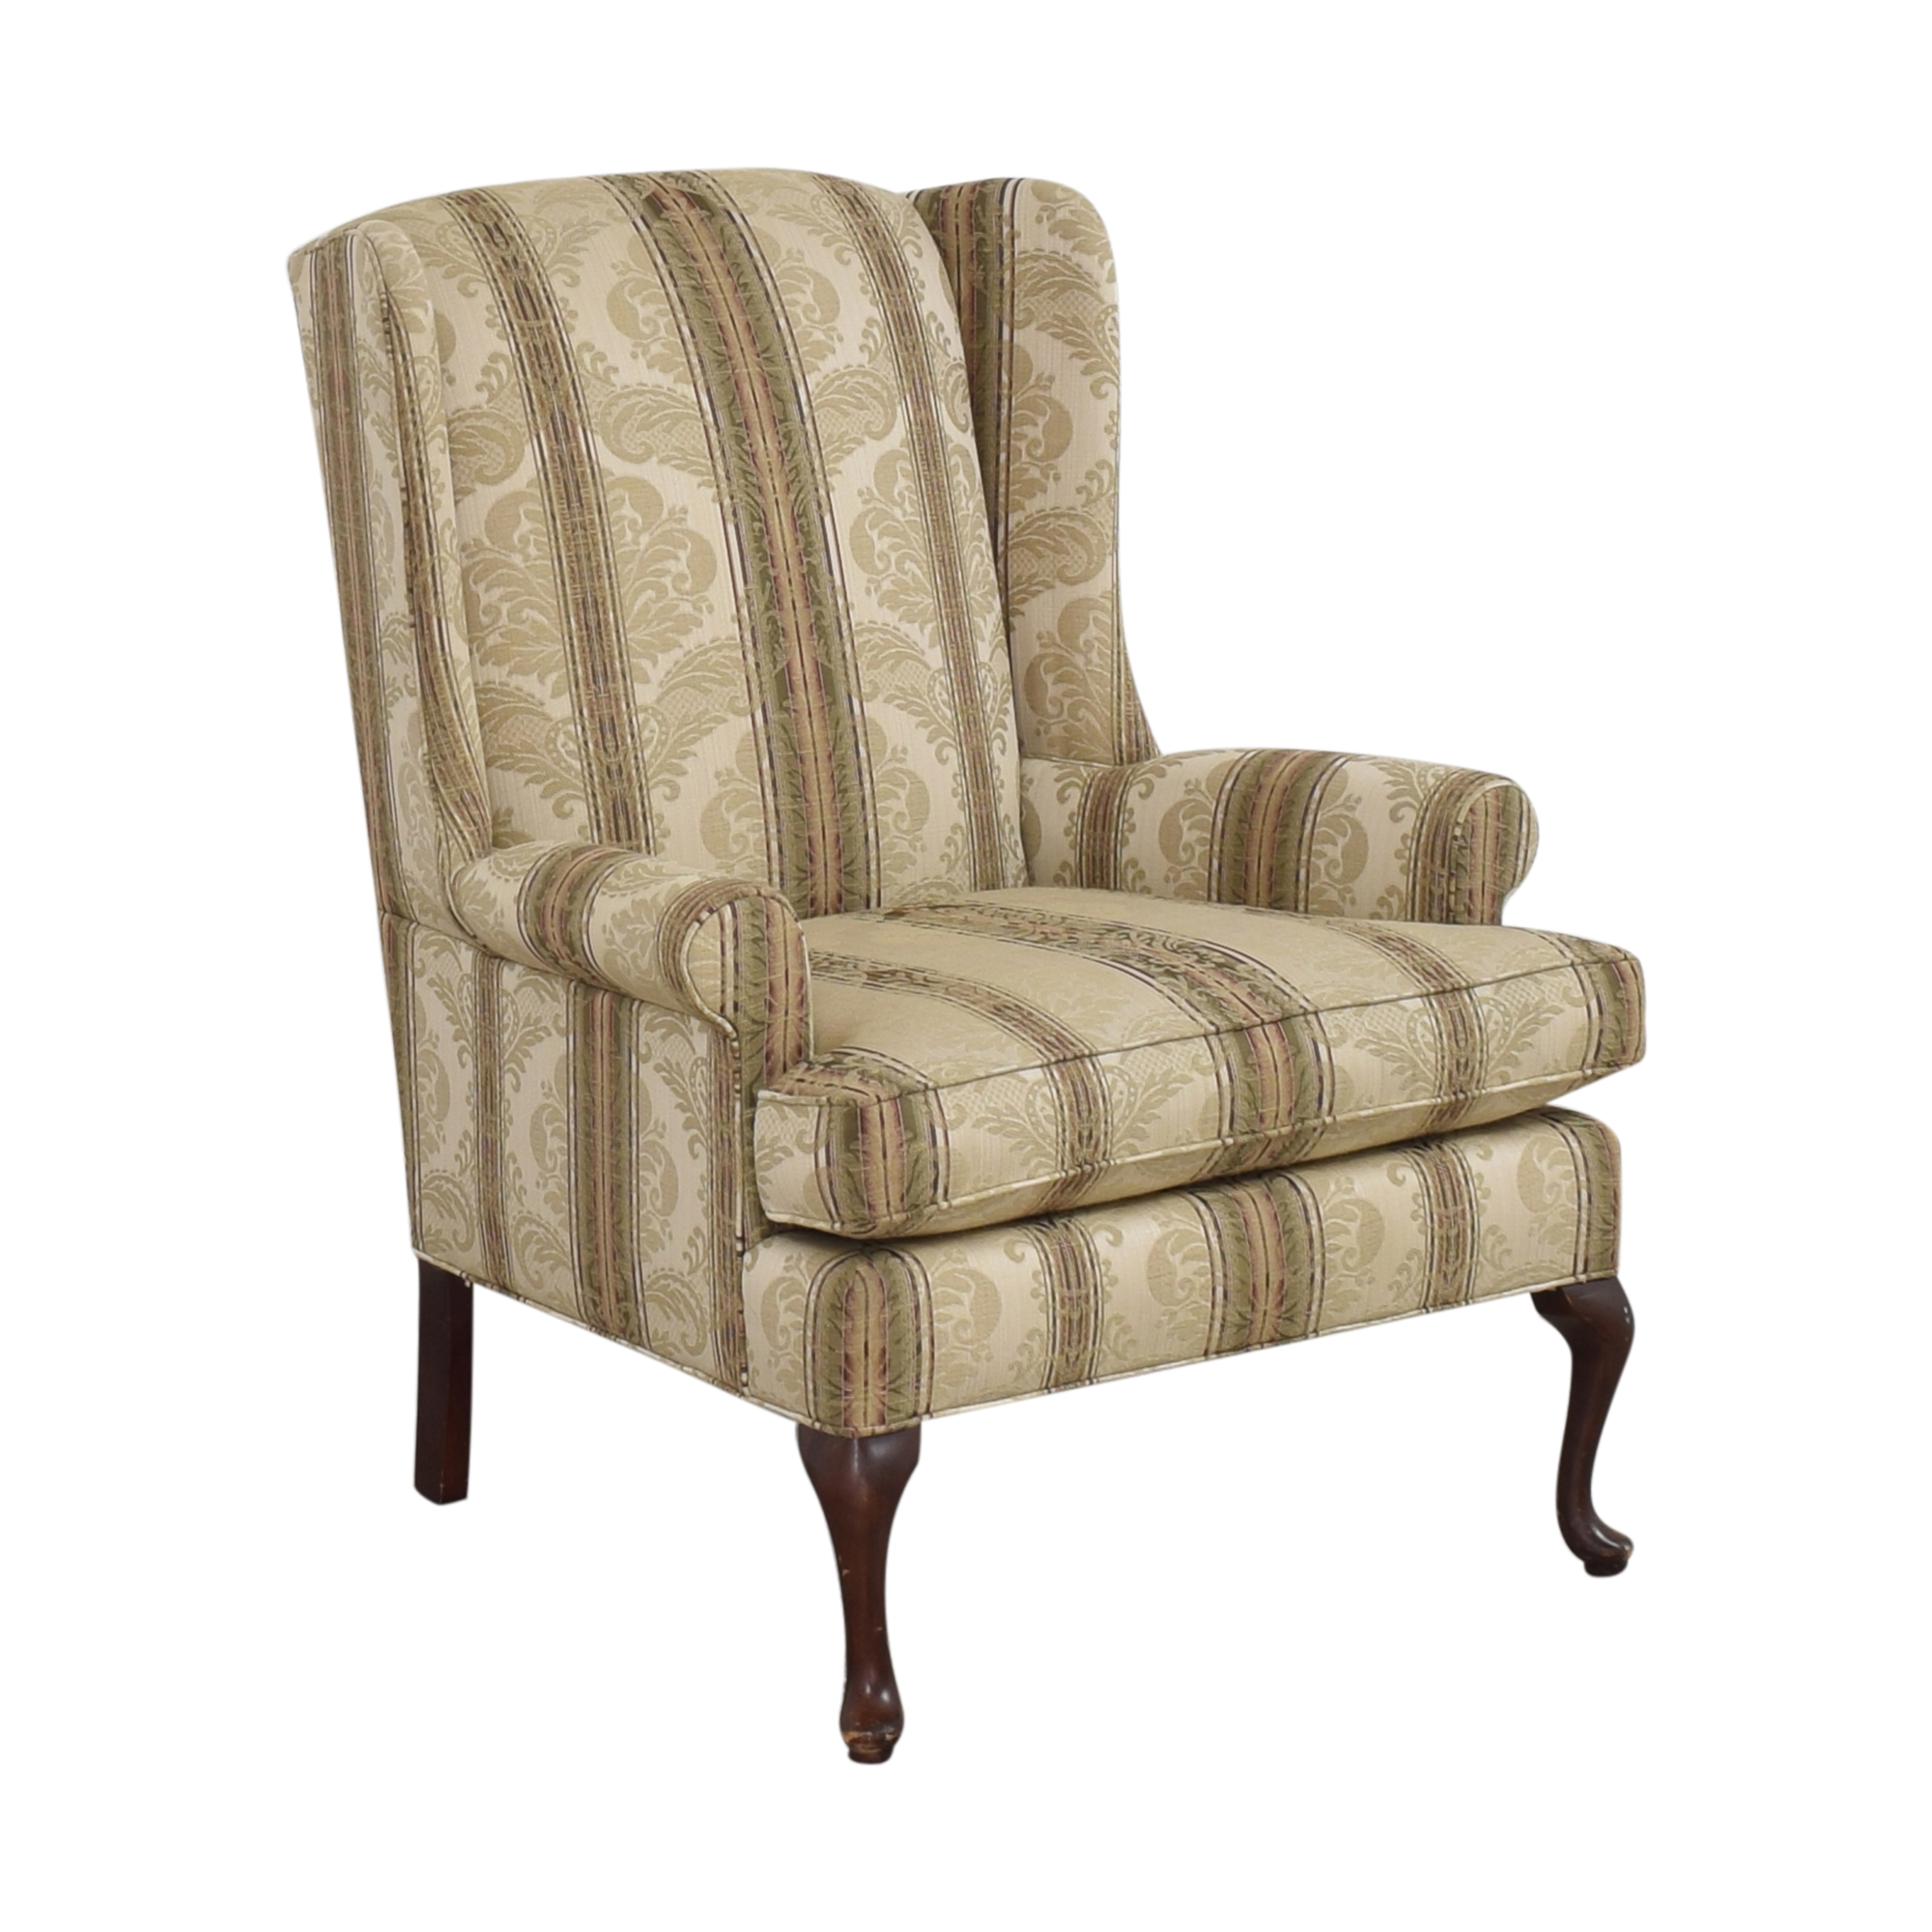 Thomasville Damask Striped Wingback Chair / Chairs